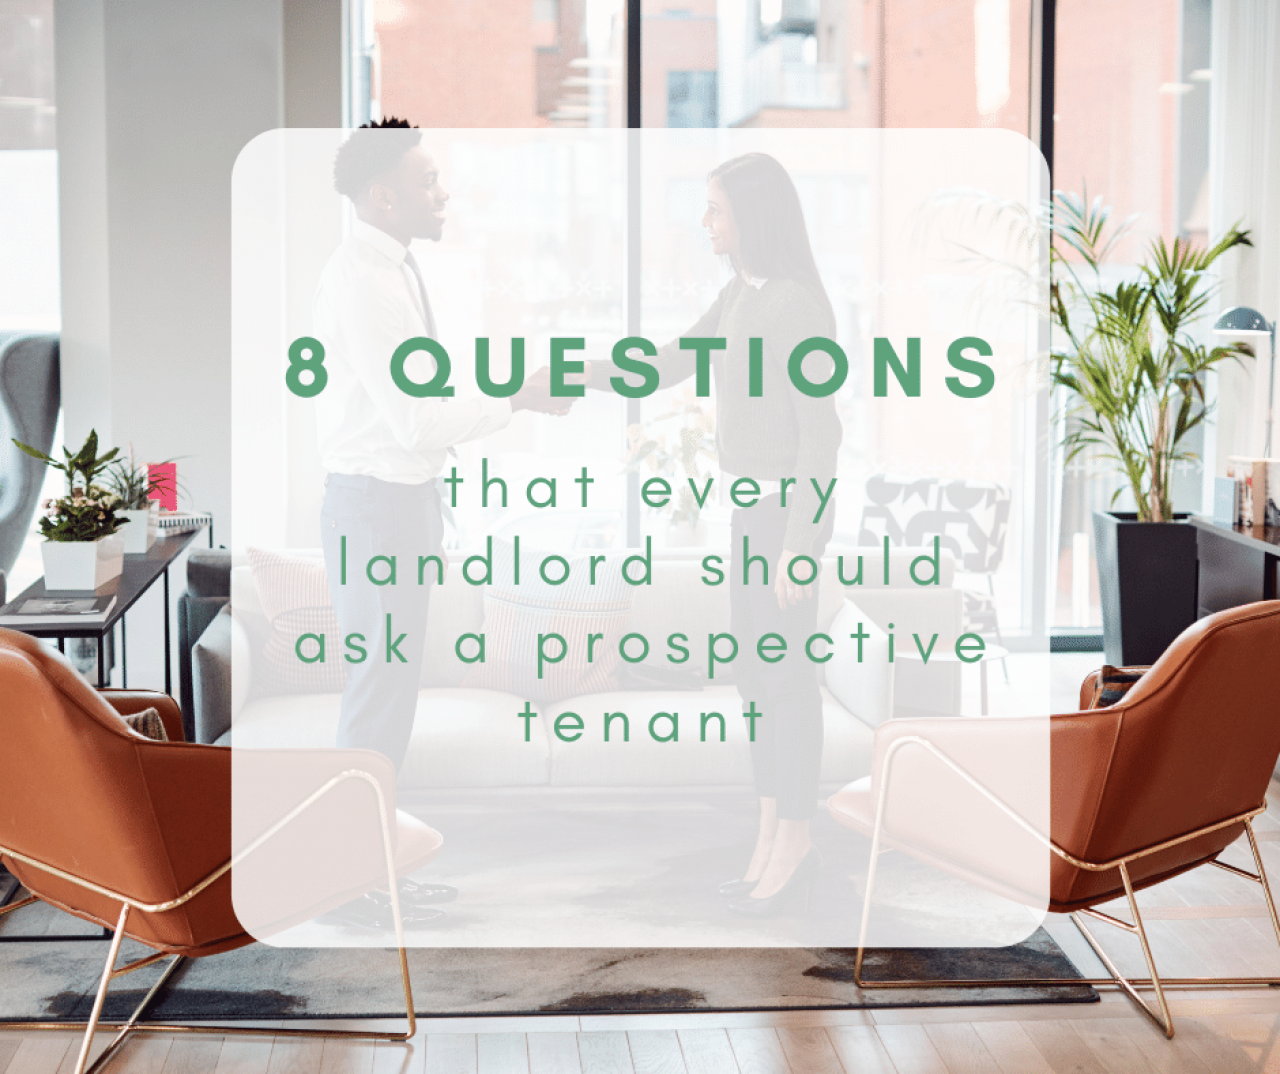 >Questions to ask a prospective tenant